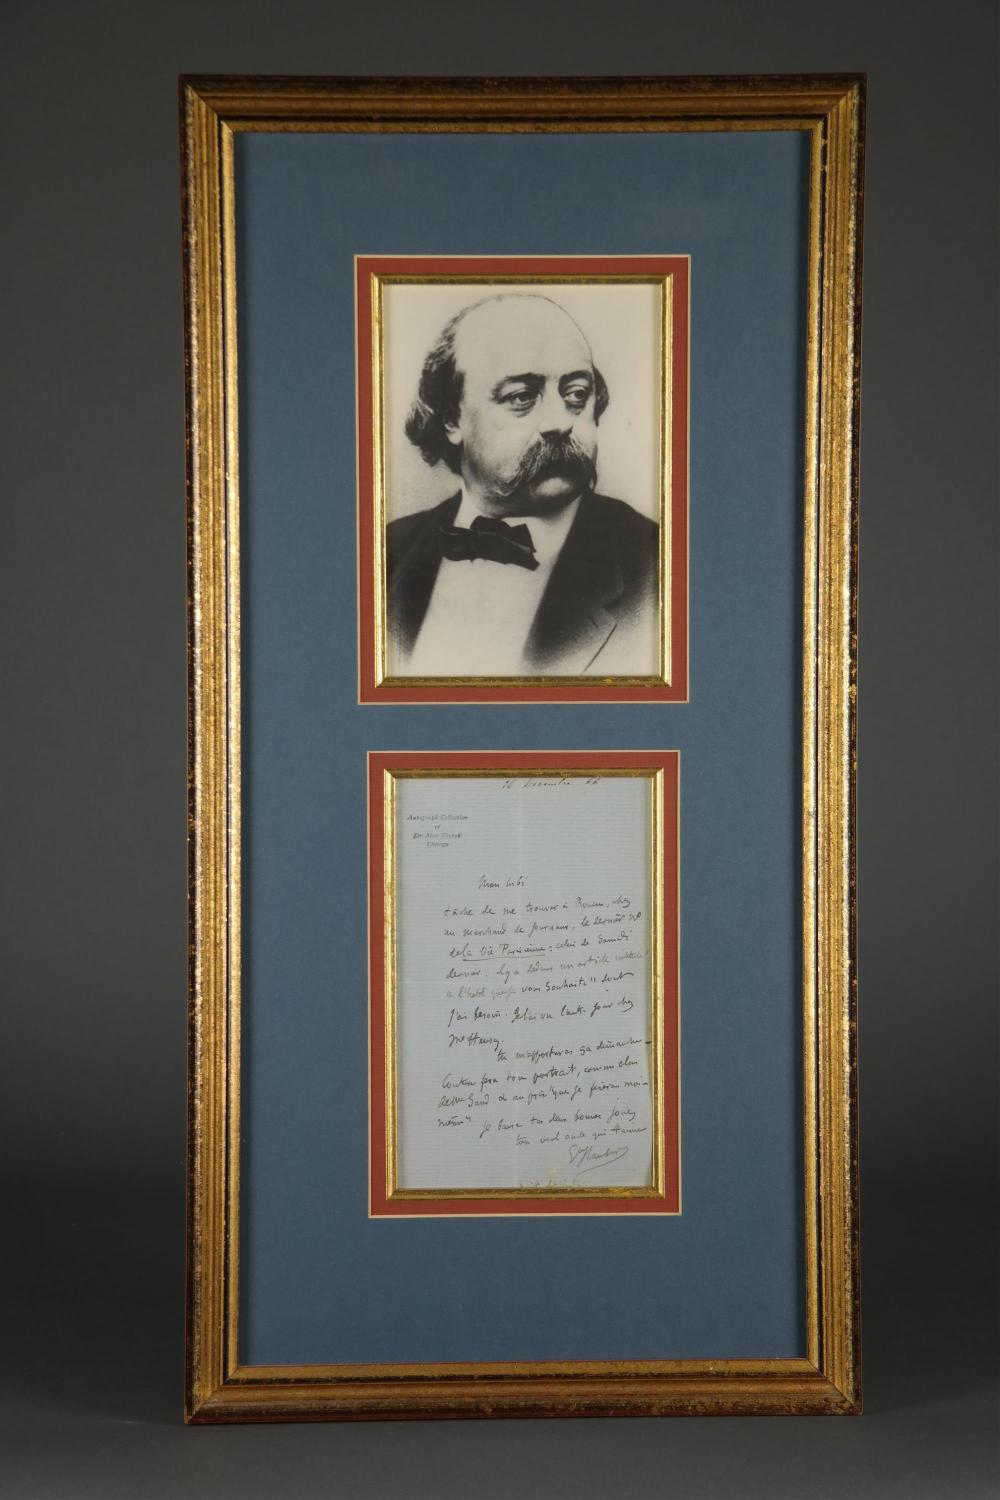 Gustave Flaubert. Autograph Letter Signed. 1866.